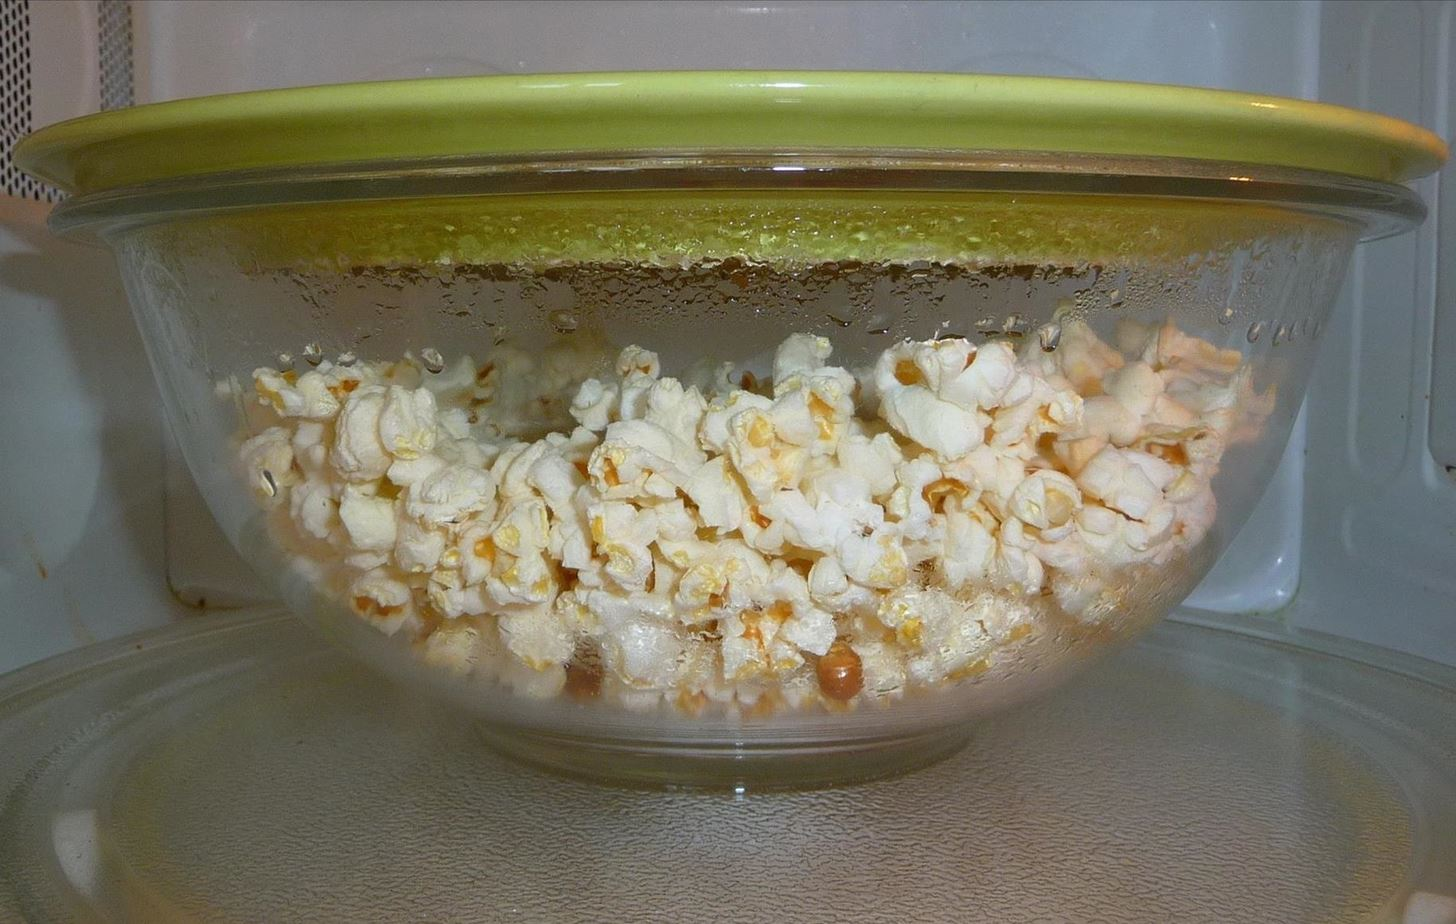 The Only Way to Make Buttered Popcorn in a Bowl